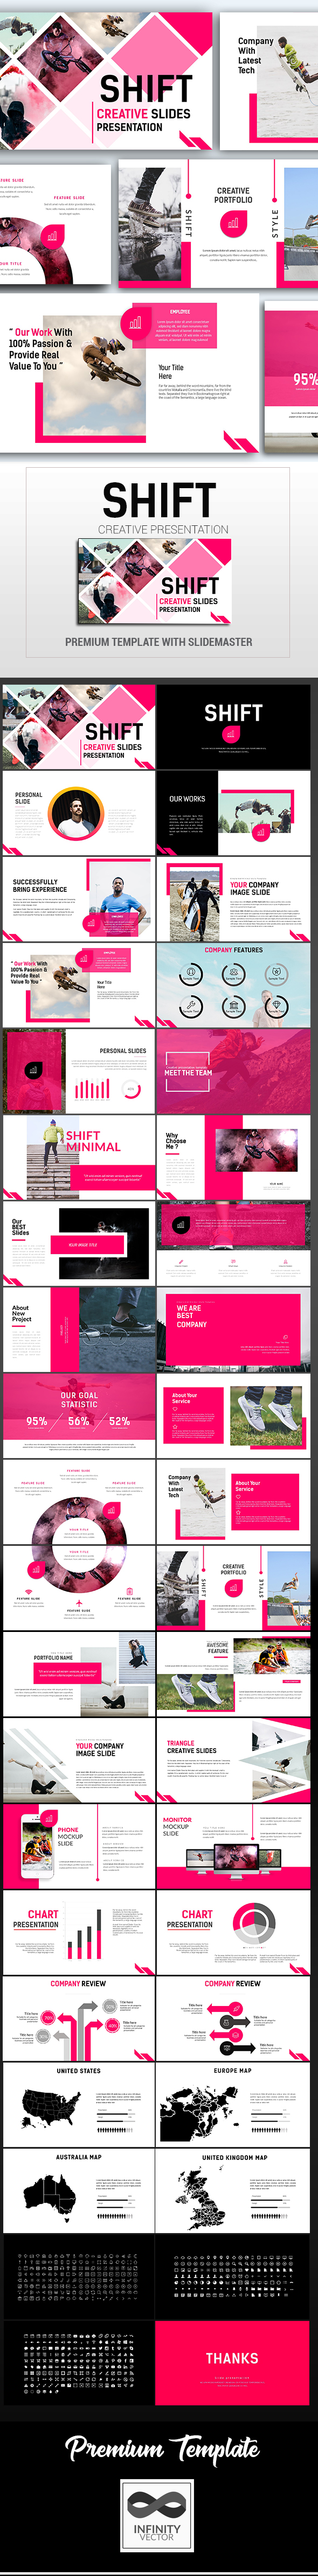 Shift Creative Presentation Keynote - Keynote Templates Presentation Templates